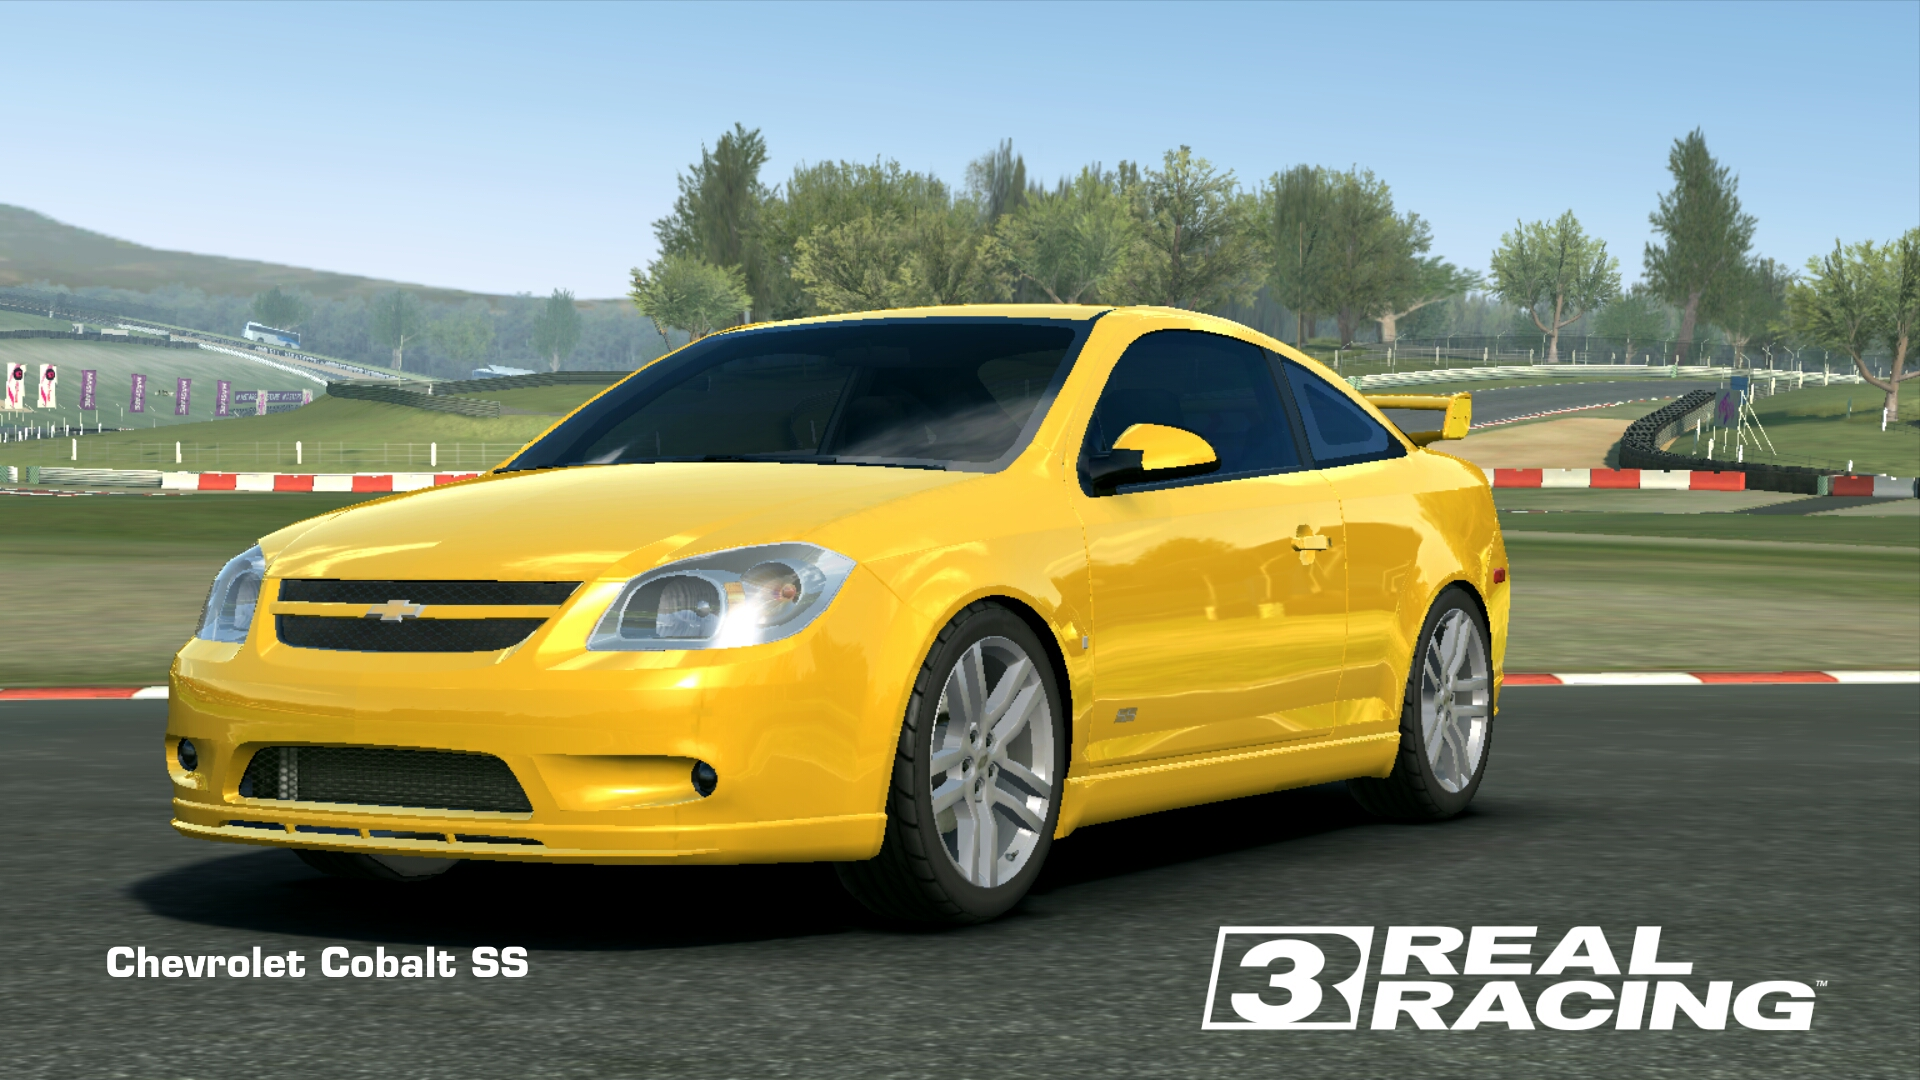 lamborghini miura real racing 3 with Chevrolet Cobalt Ss on How To Start A Lamborghini also 1091731 audi Heads To Spa With Two New Cars Wec Round 2 as well McLaren Honda Formula 1 Concept With Closed Cockpit additionally Chevrolet Cobalt SS in addition Top 10 Cars Of All Time 2544682.